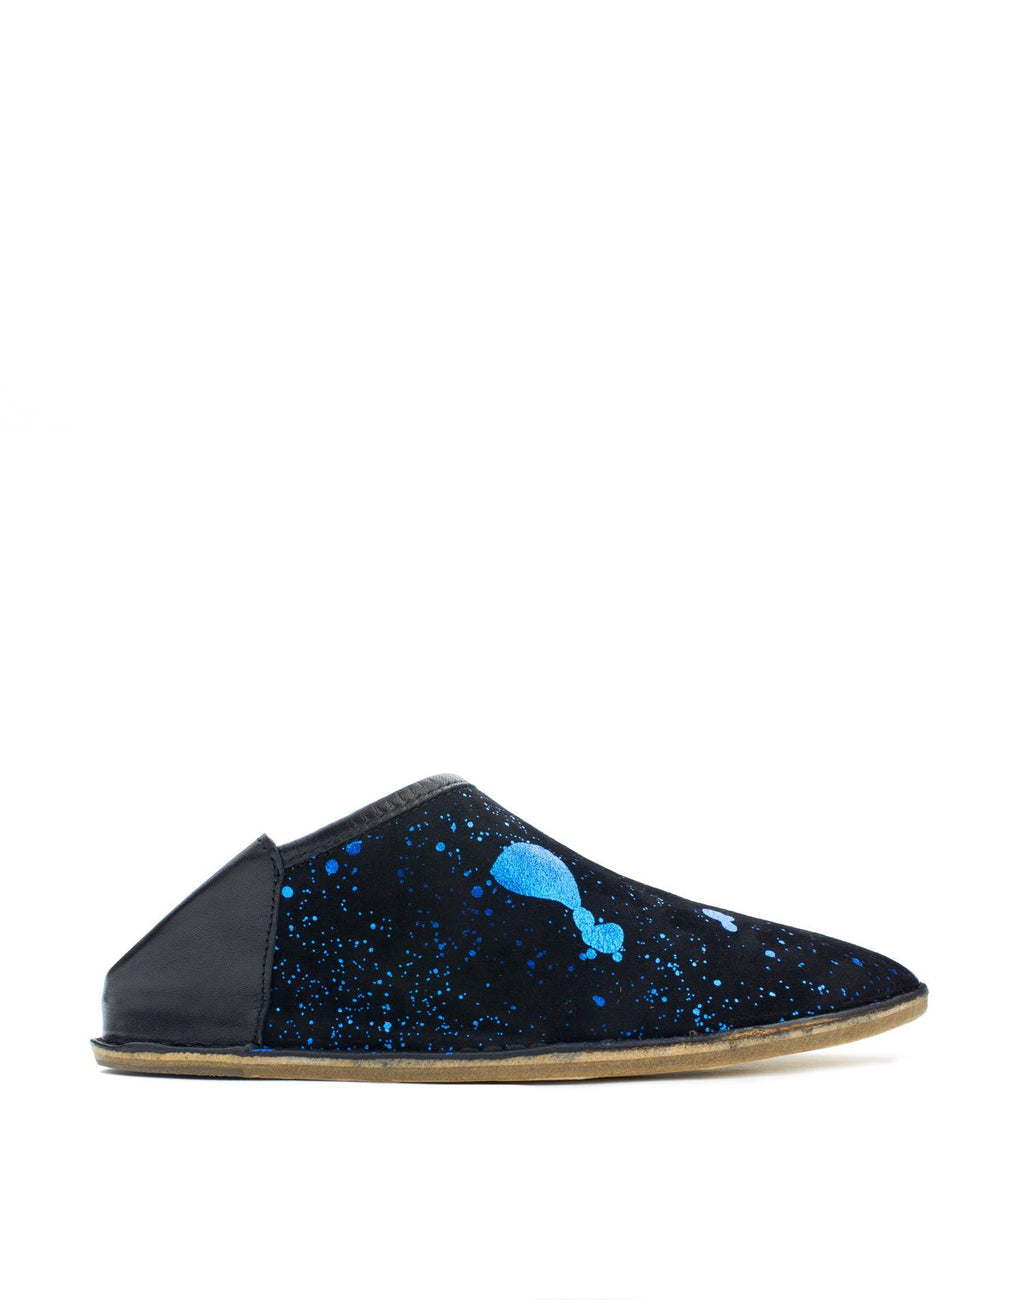 Black and blue metallic splashed suede slip on slipper shoe by designer Georgina Goodman